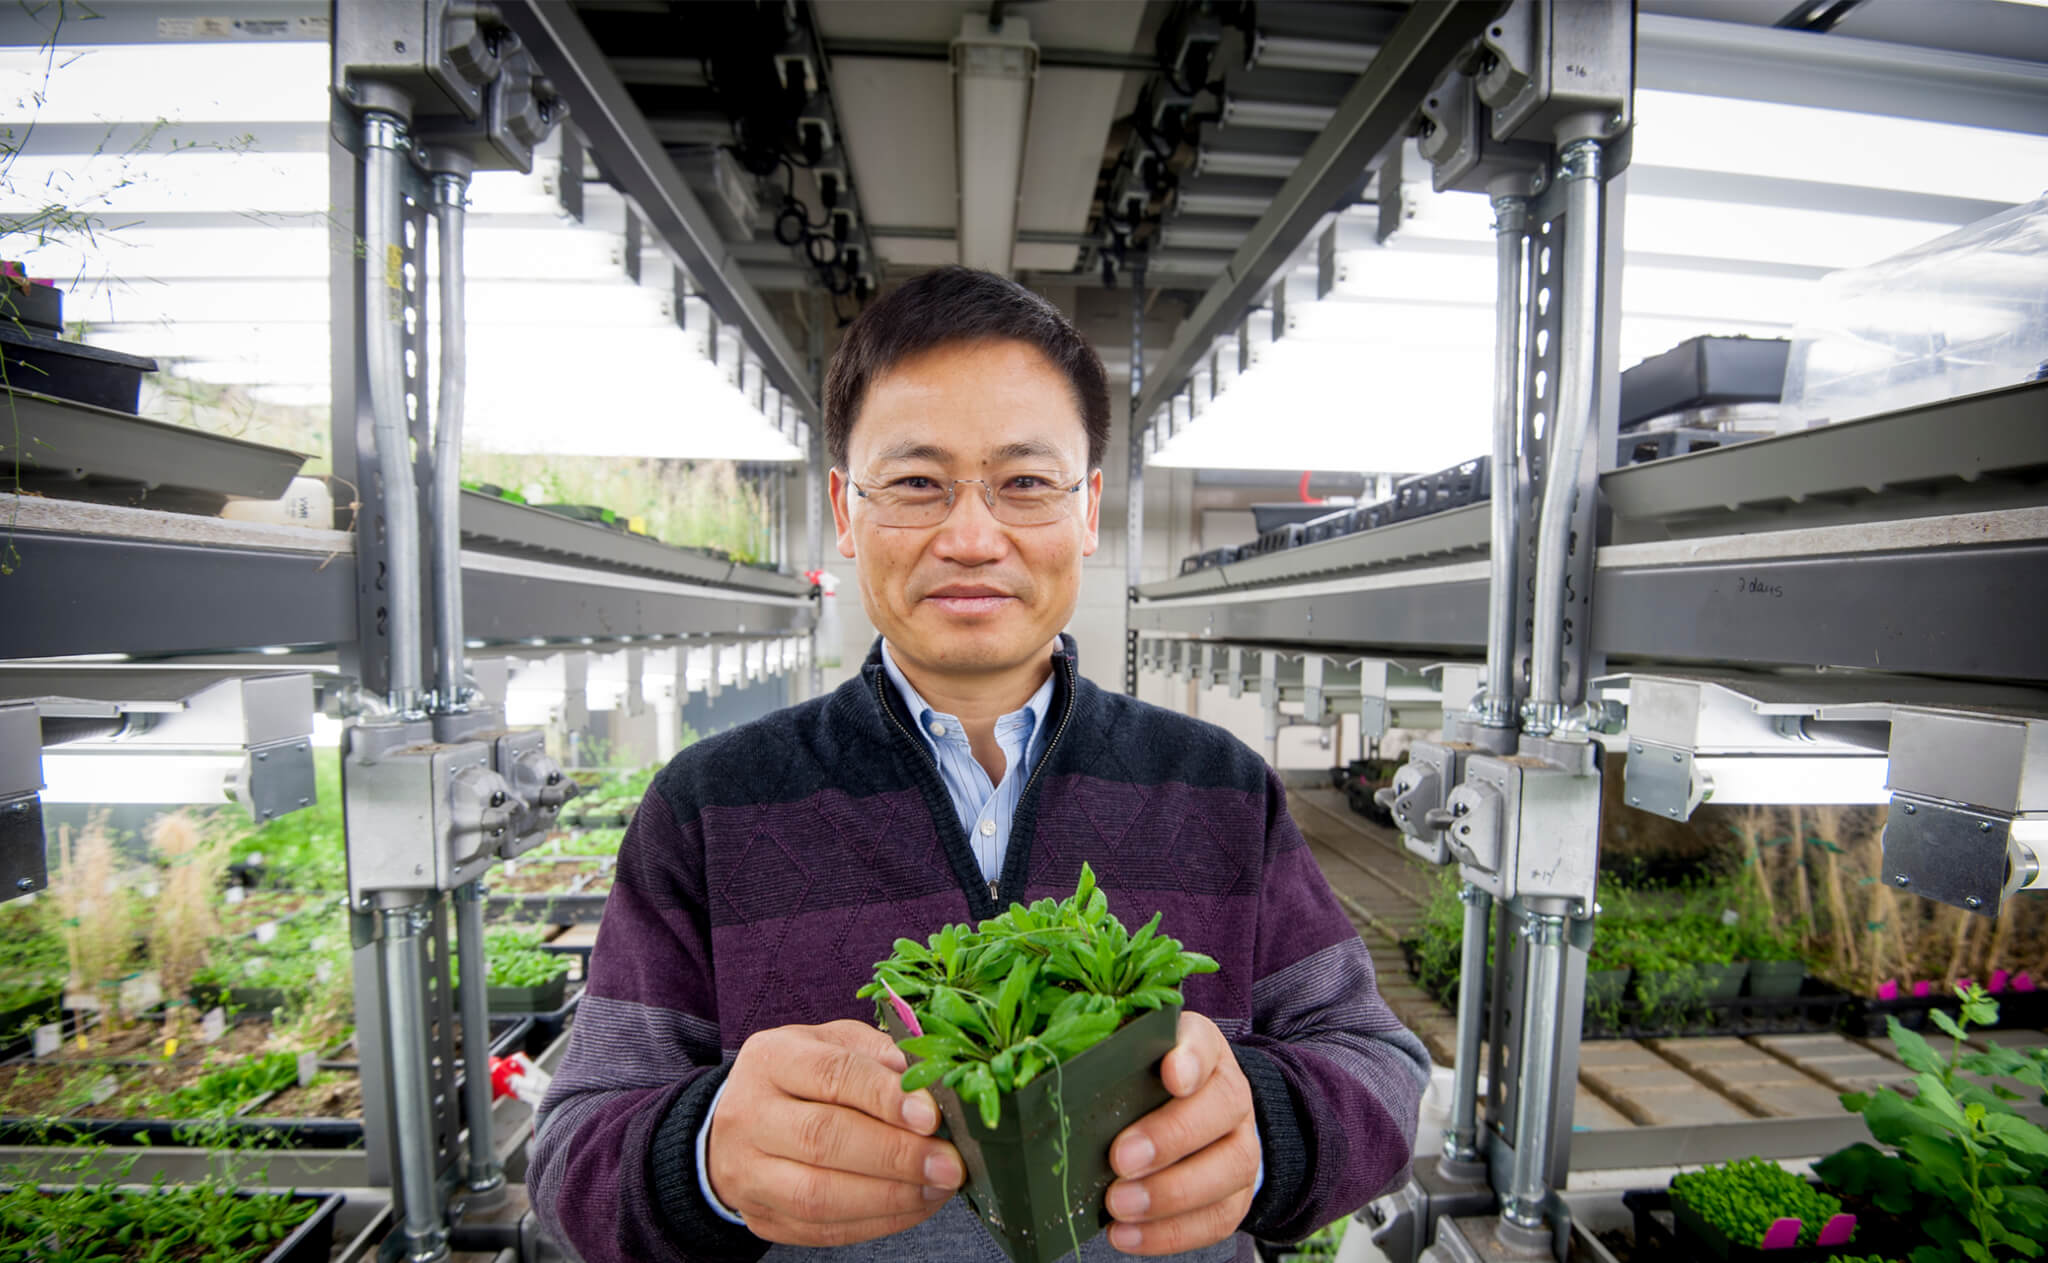 Dr. Jian-Kang Zhu holds a plant in the lab